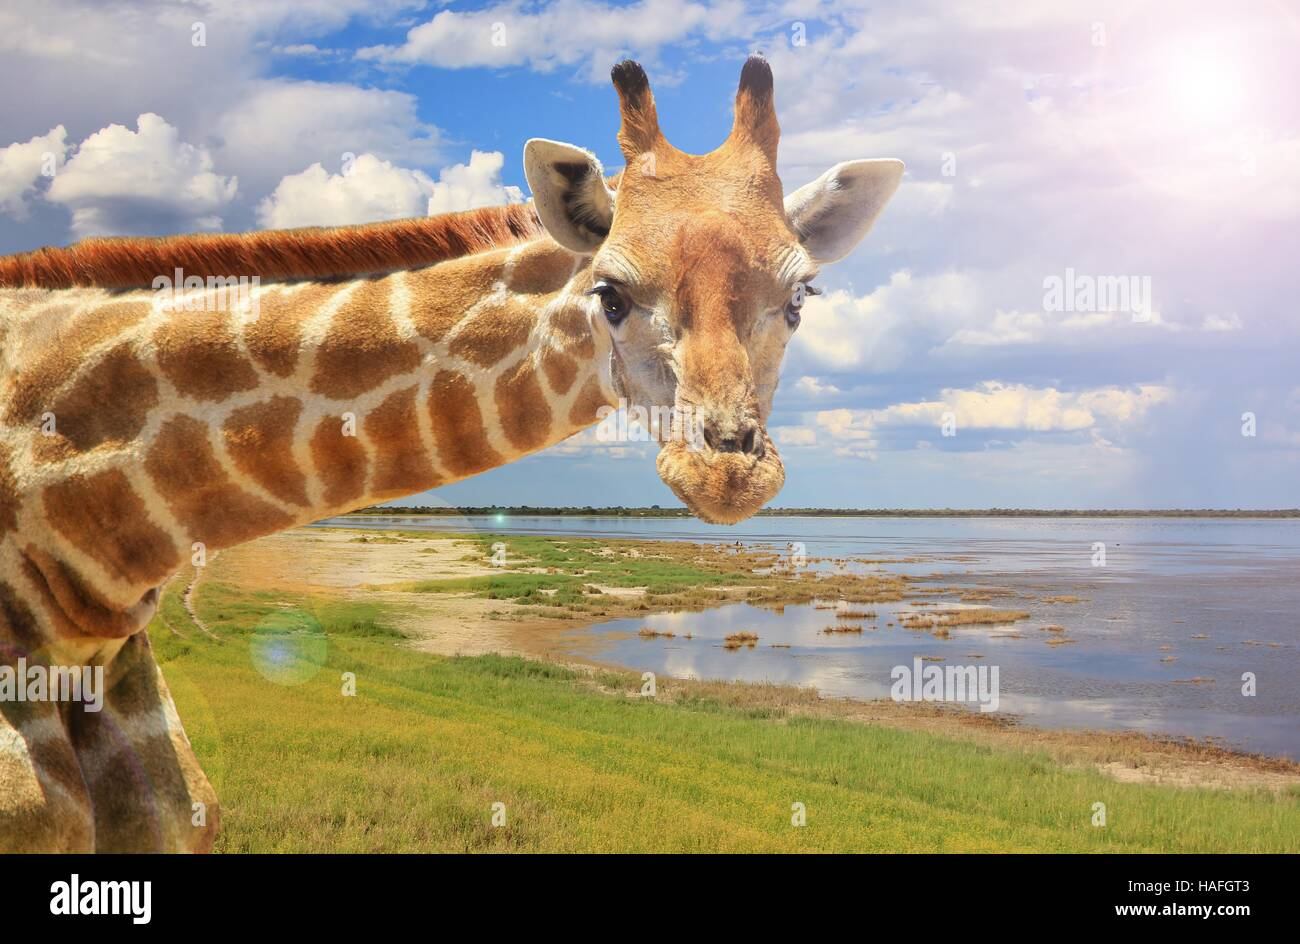 Girafe - faune africaine dans les wilds - Photo Stock